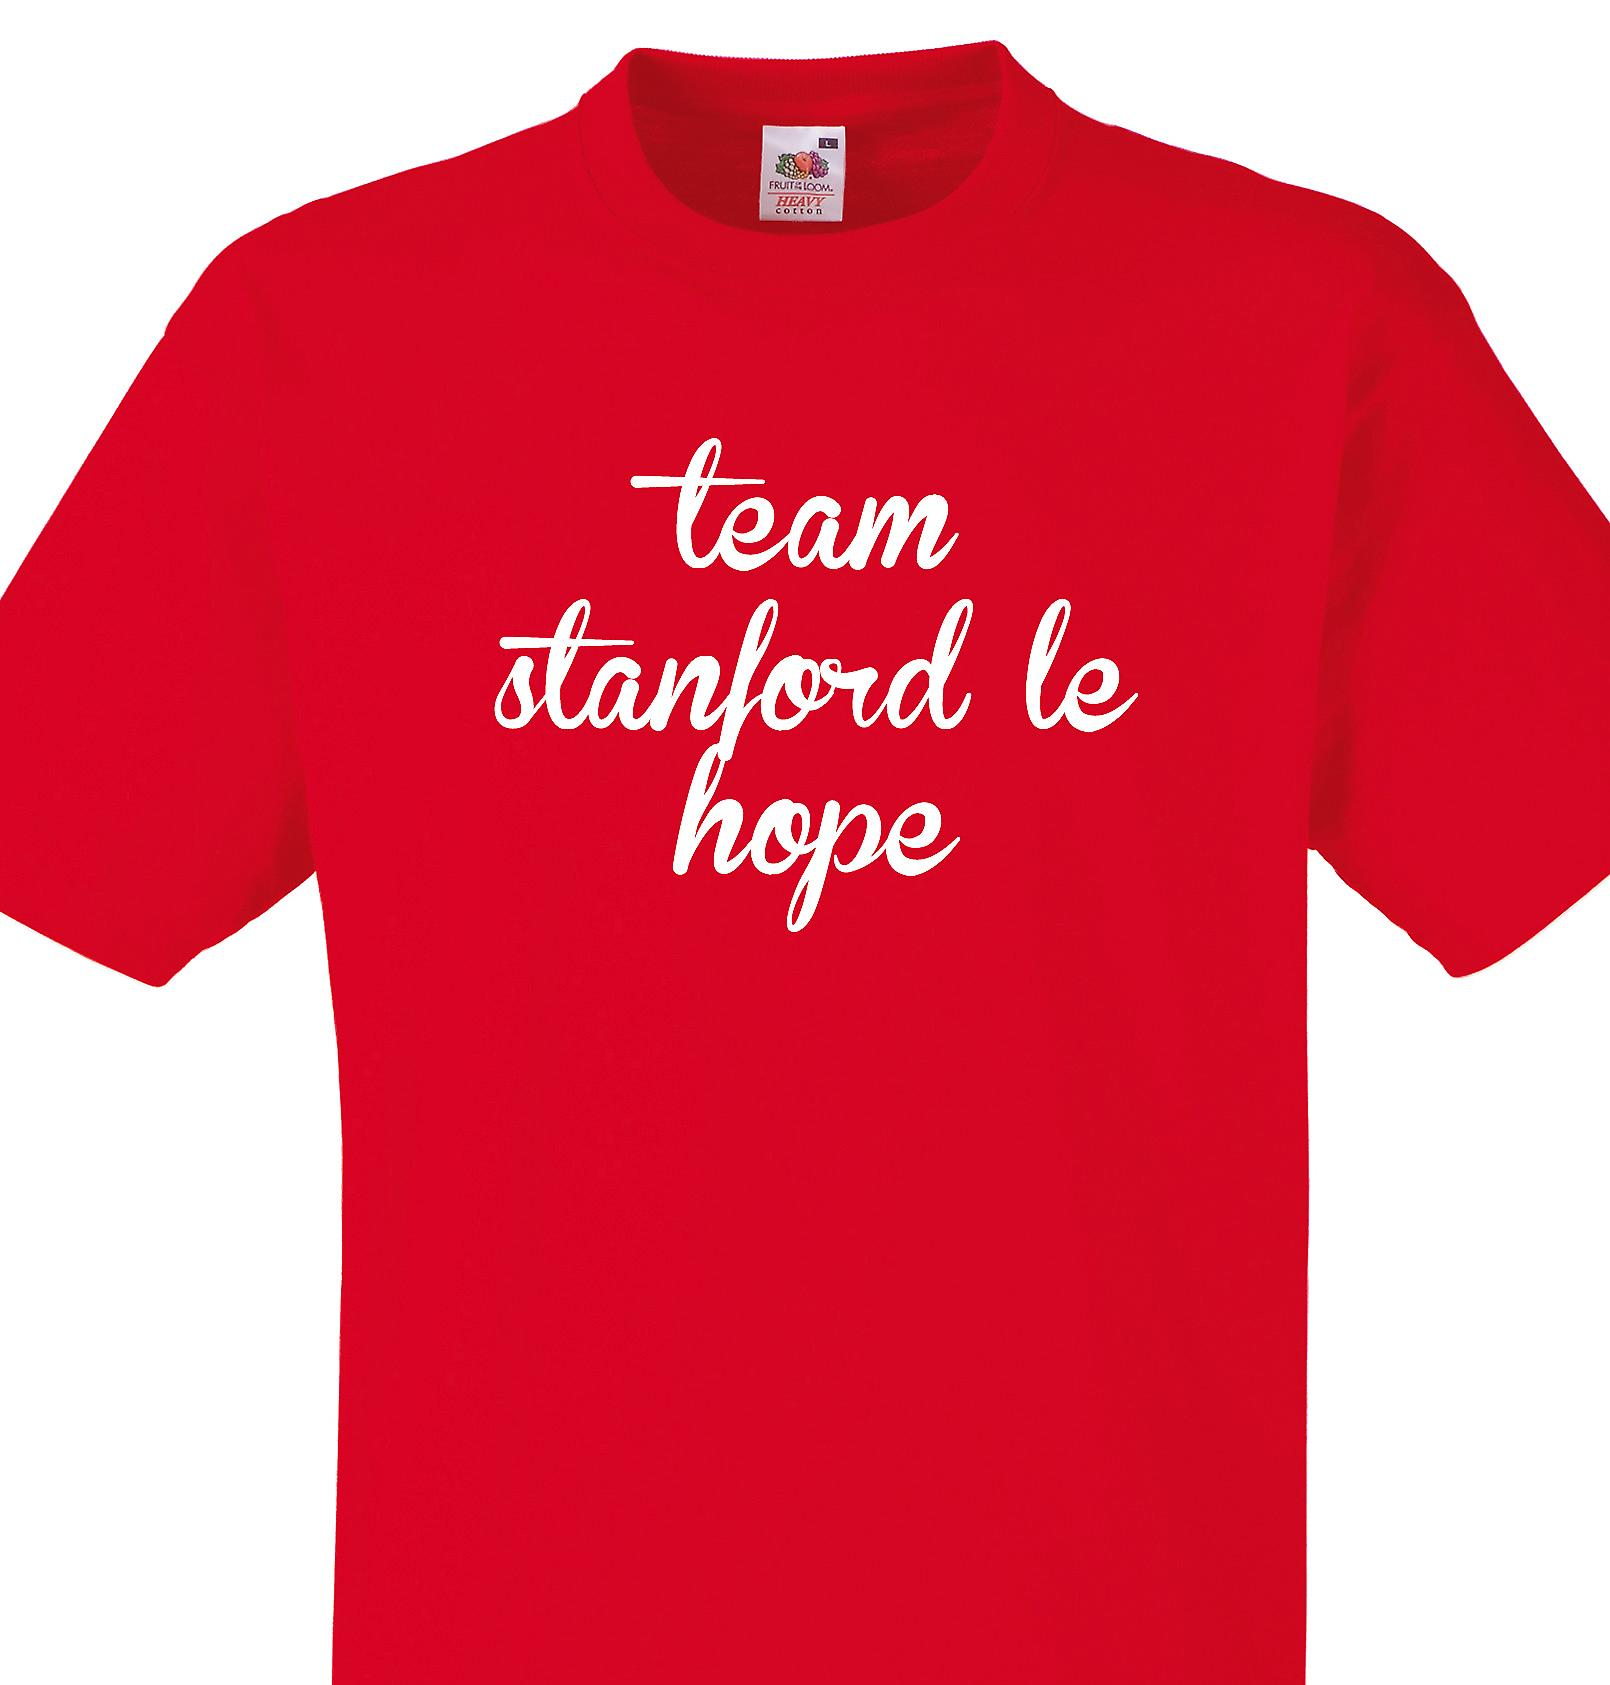 Team Stanford le hope Red T shirt